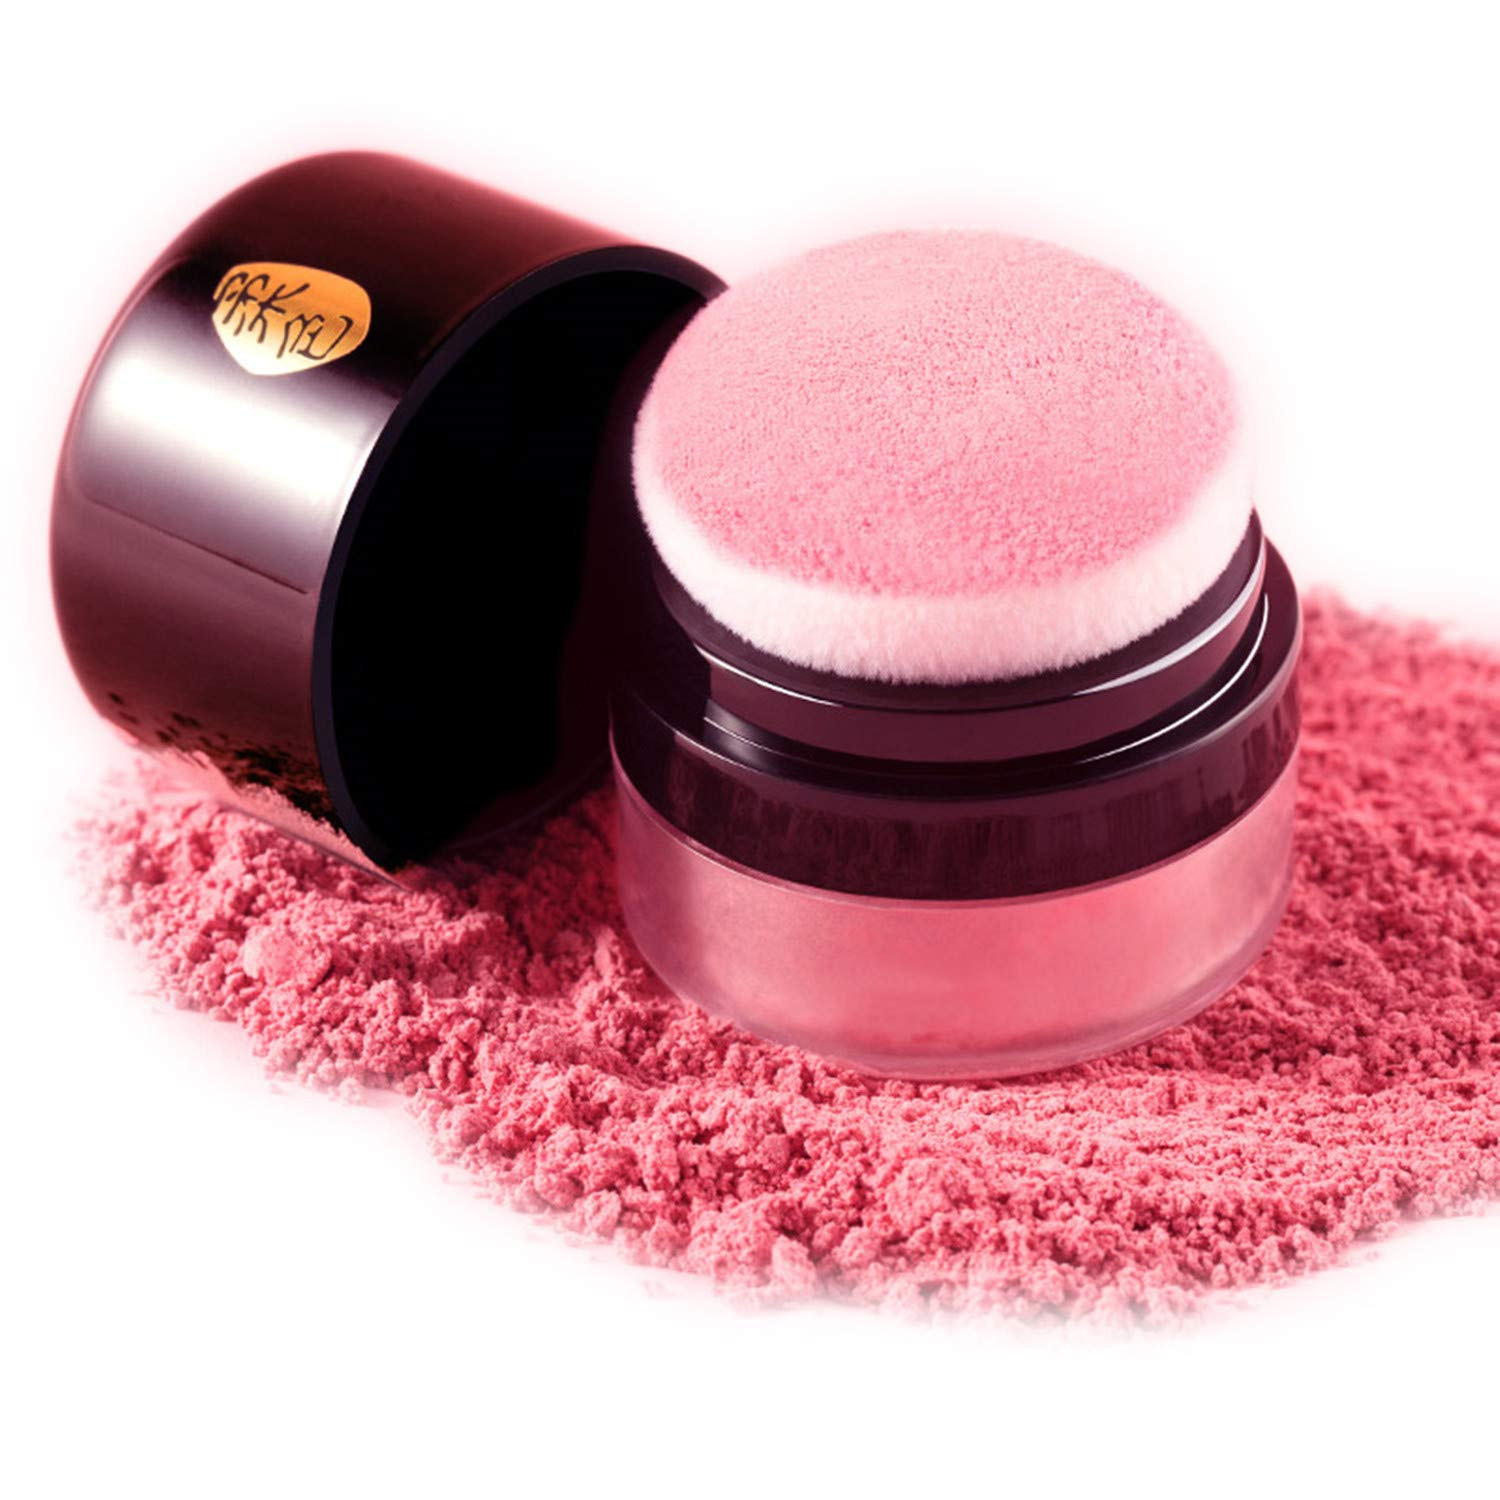 Rouse Soft Face Blusher Powder Cheek Rouge Nourishing Nude Makeup Brightening Complexion Repair (Peach color)